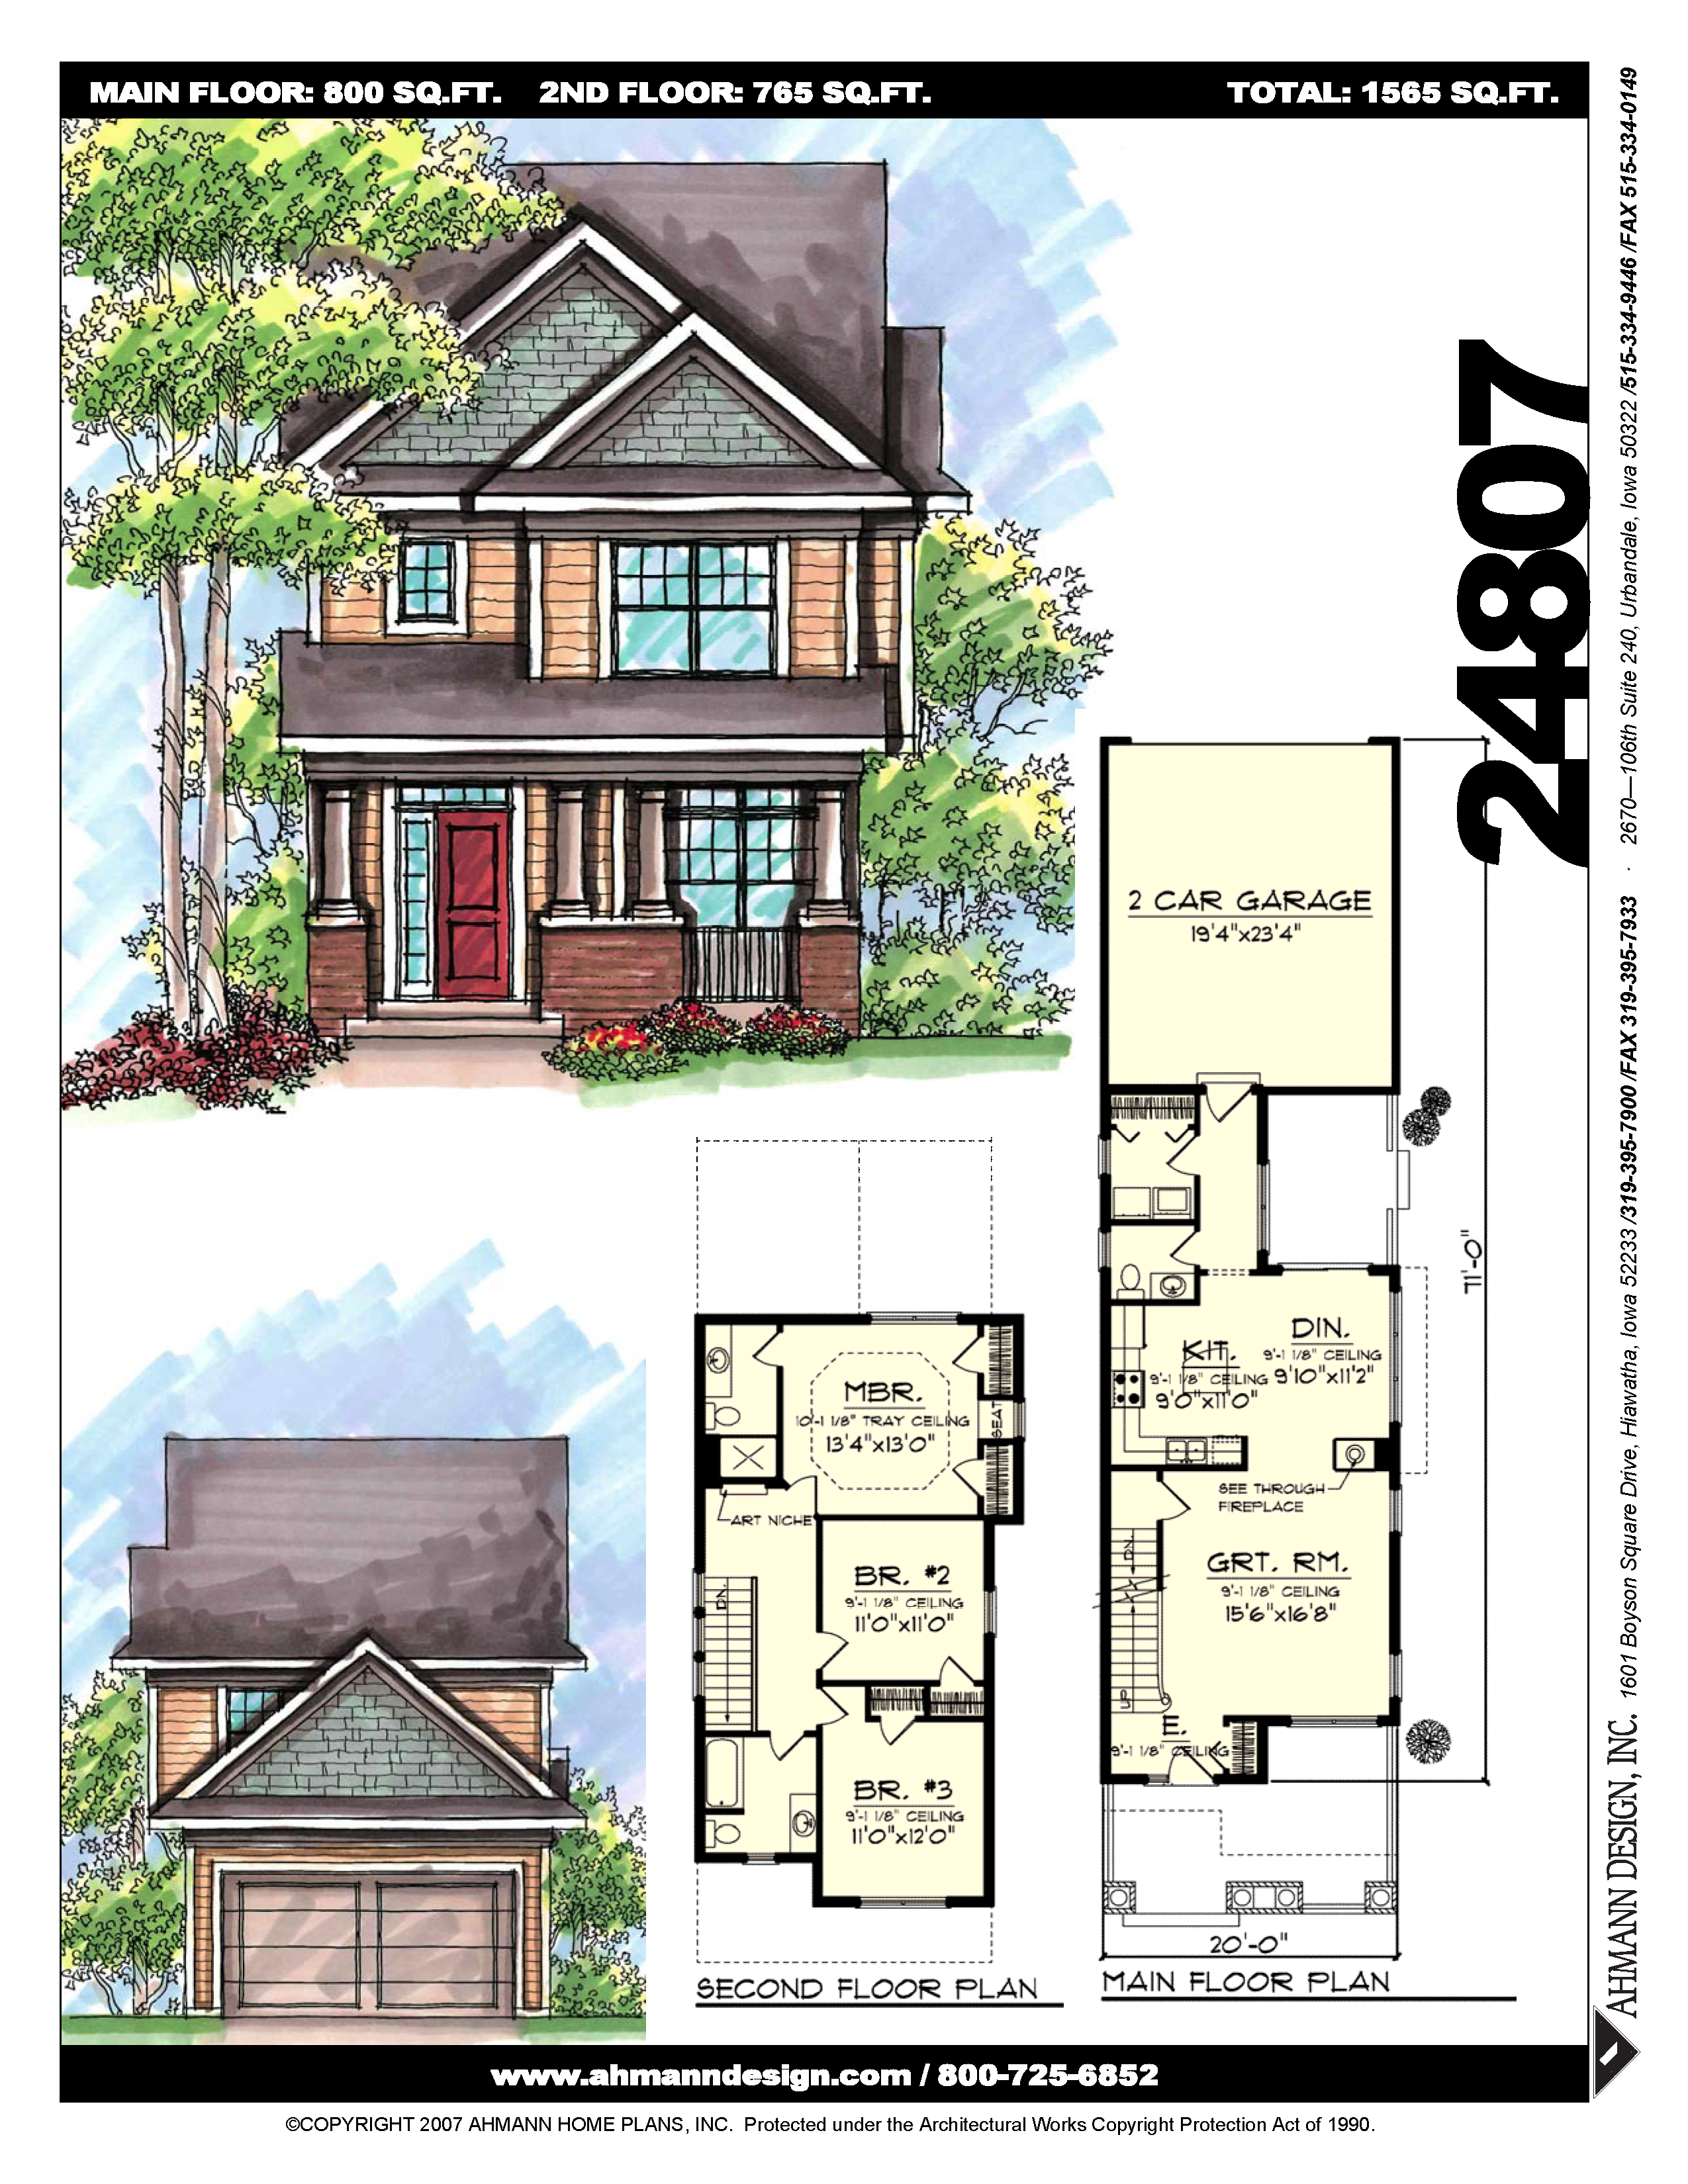 24807 American Houses House Plans Great Rooms